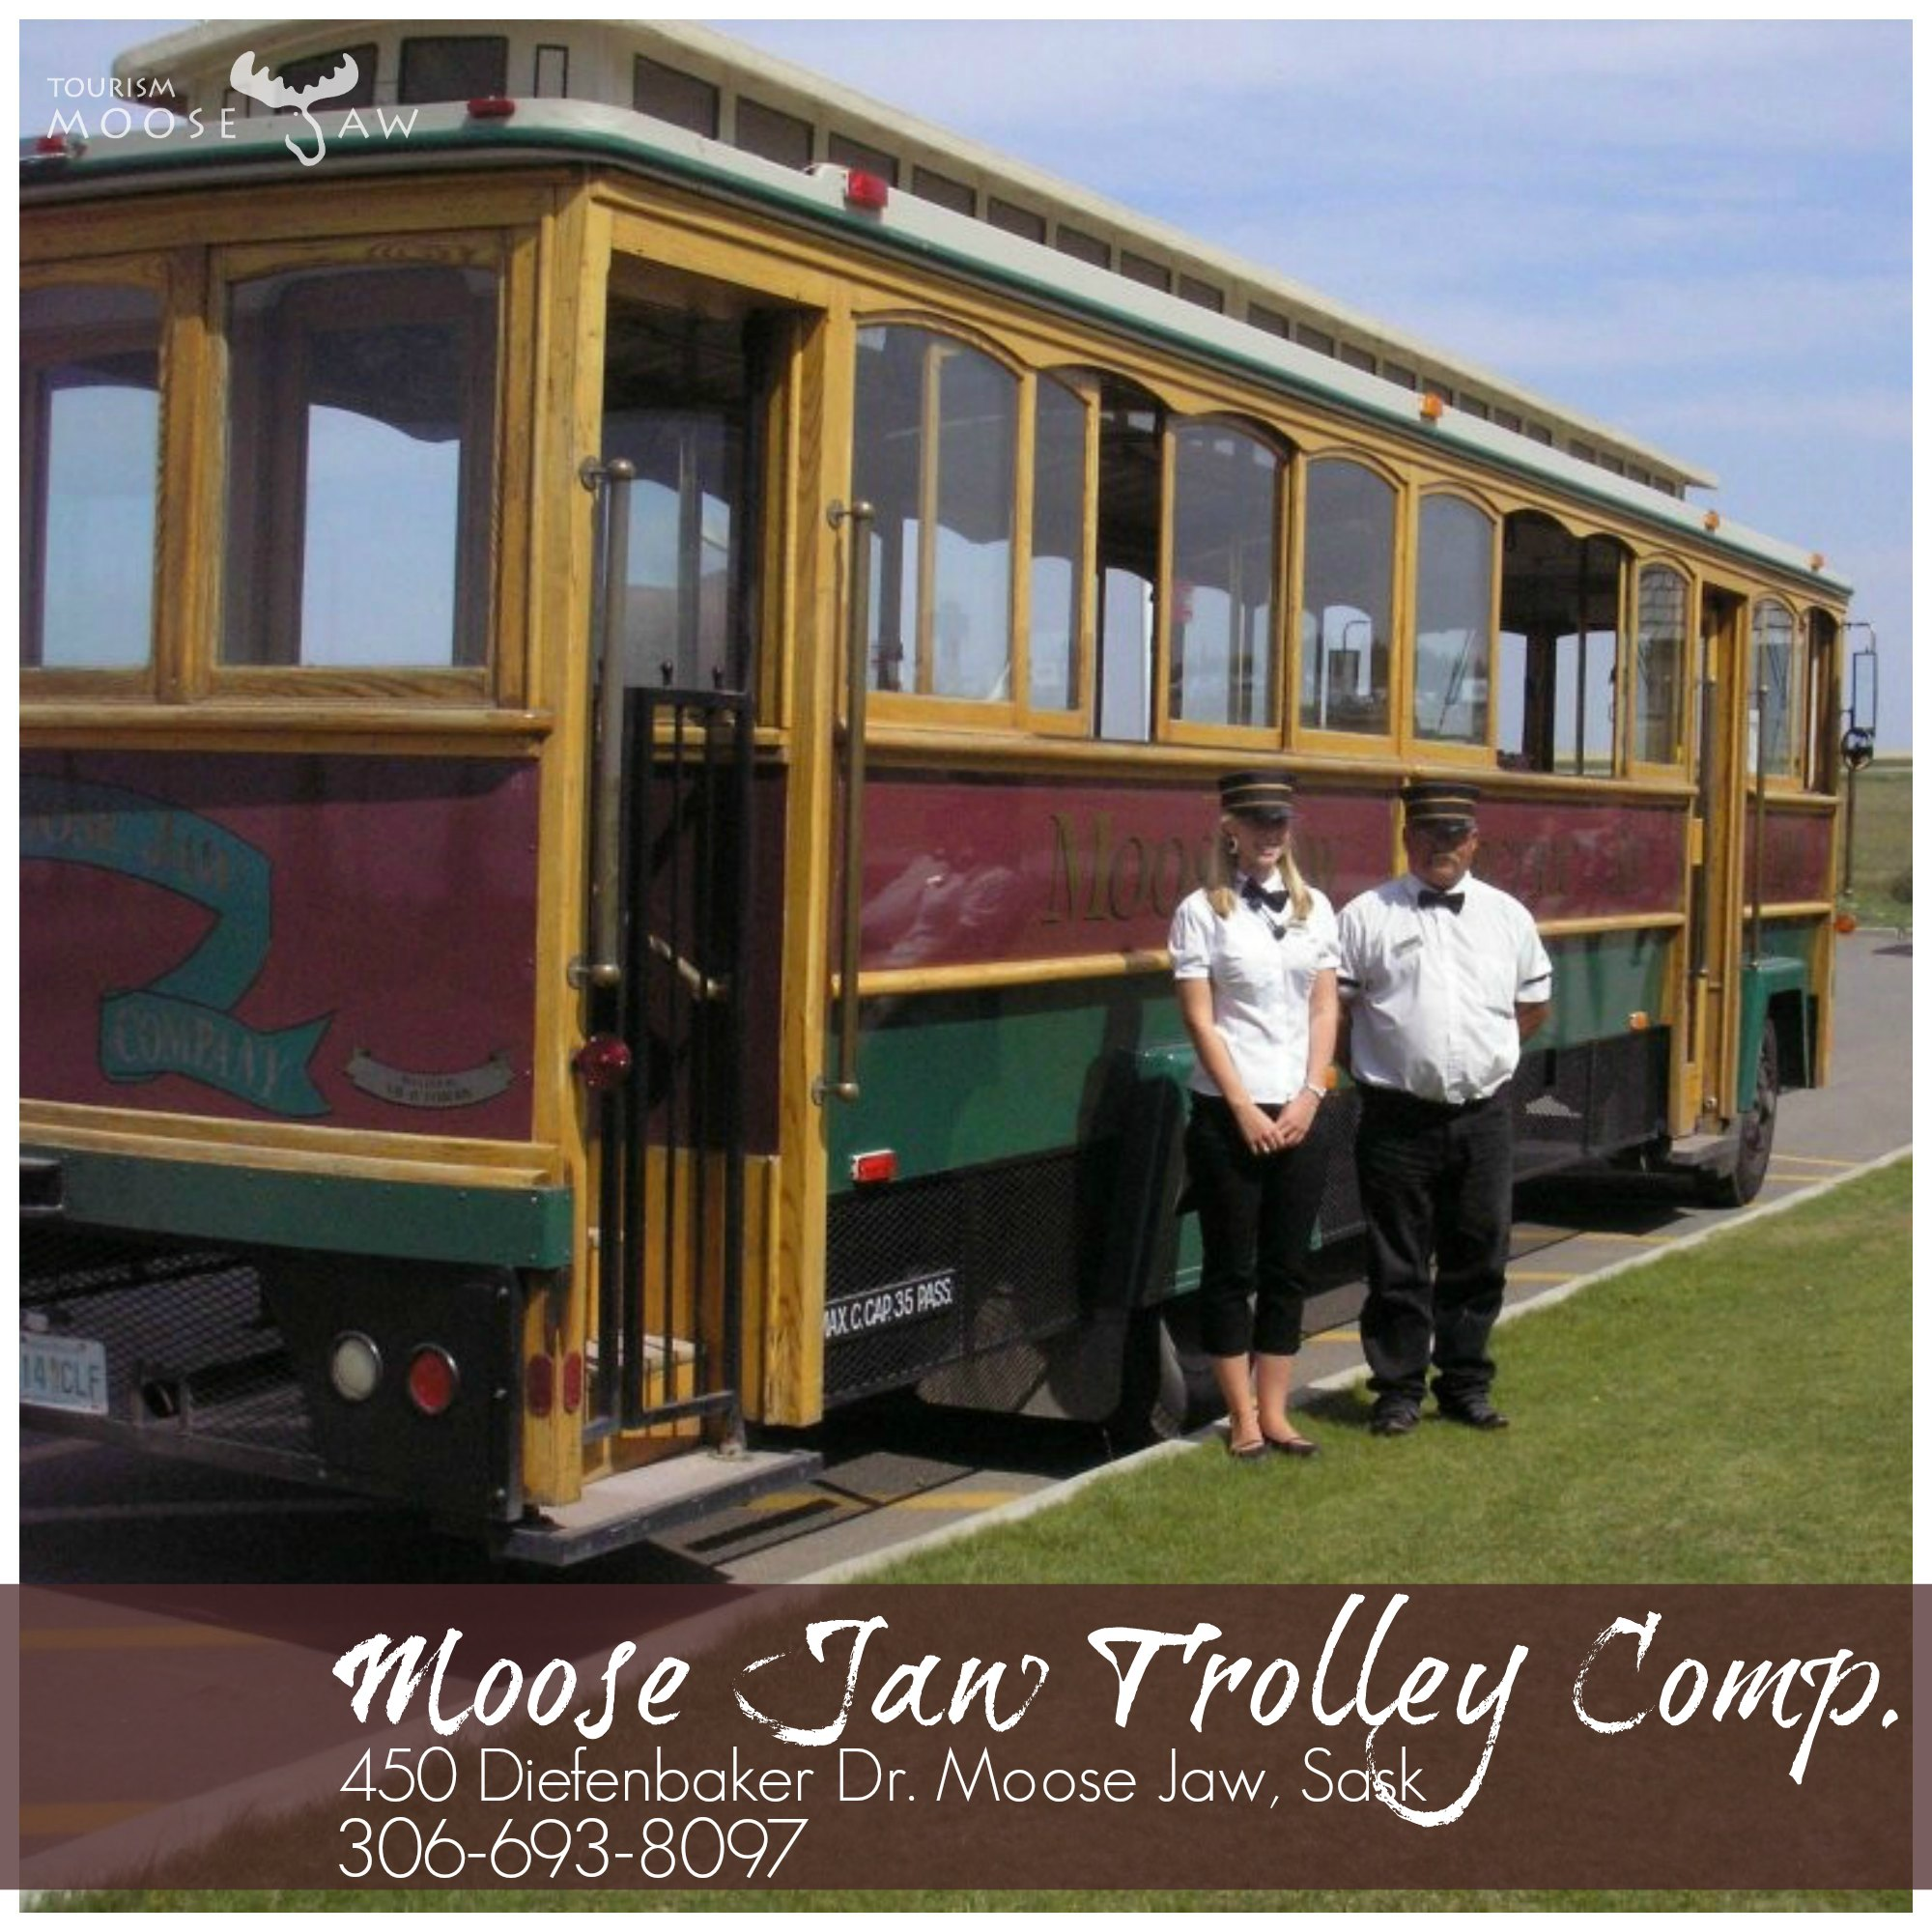 Moose Jaw Trolly Company.jpg